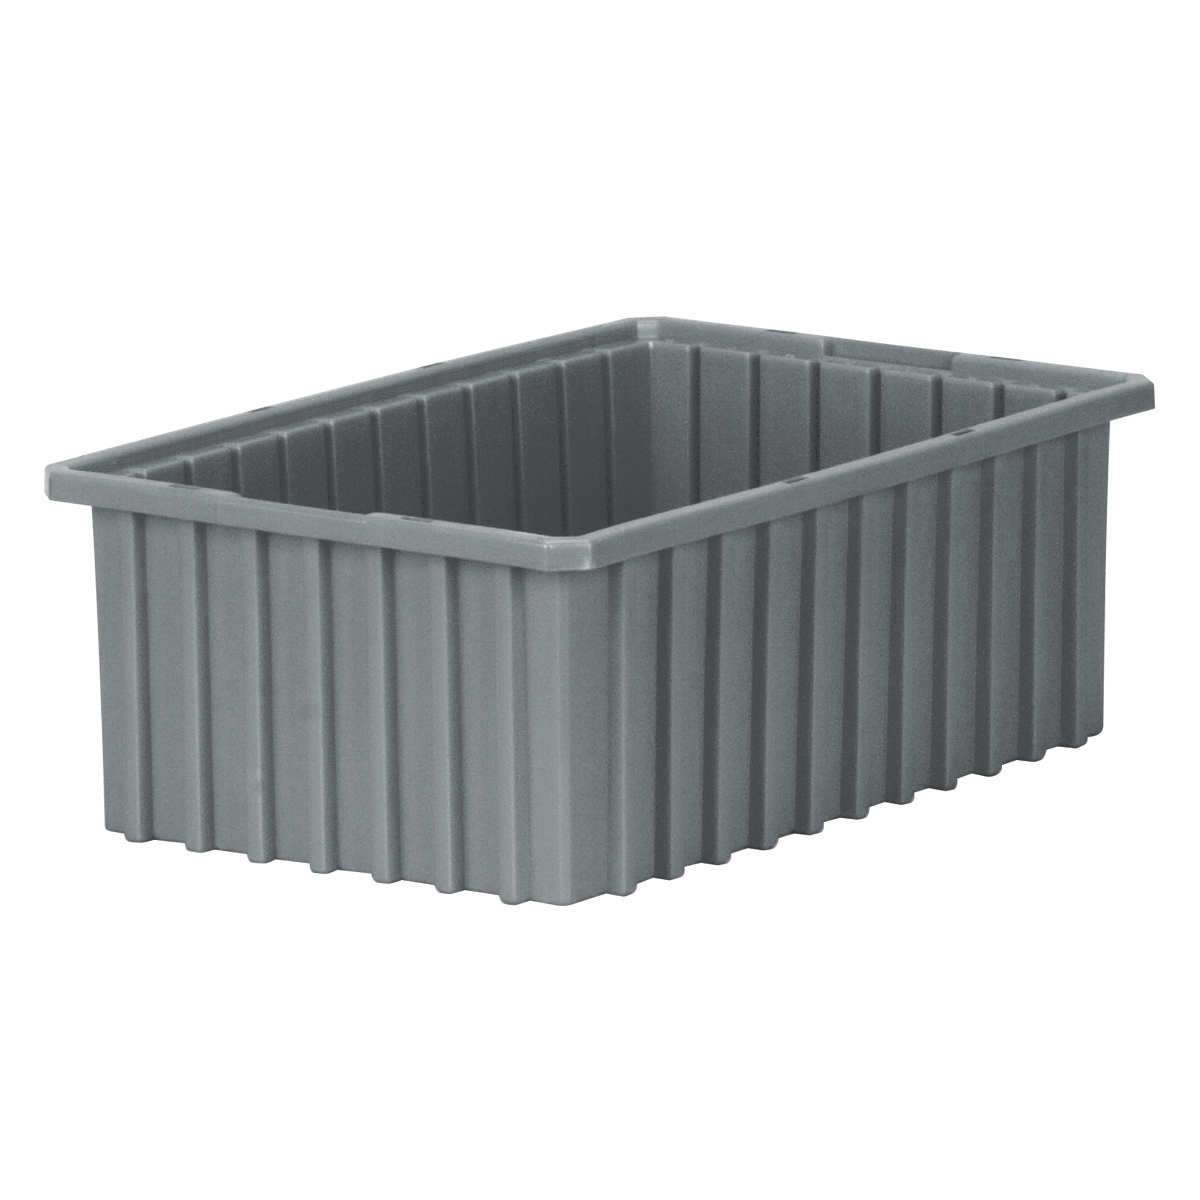 Akro-Grid Dividable Box 16-1/2 x 10-7/8 x 6, Gray (33166GREY).  This item sold in carton quantities of 8.